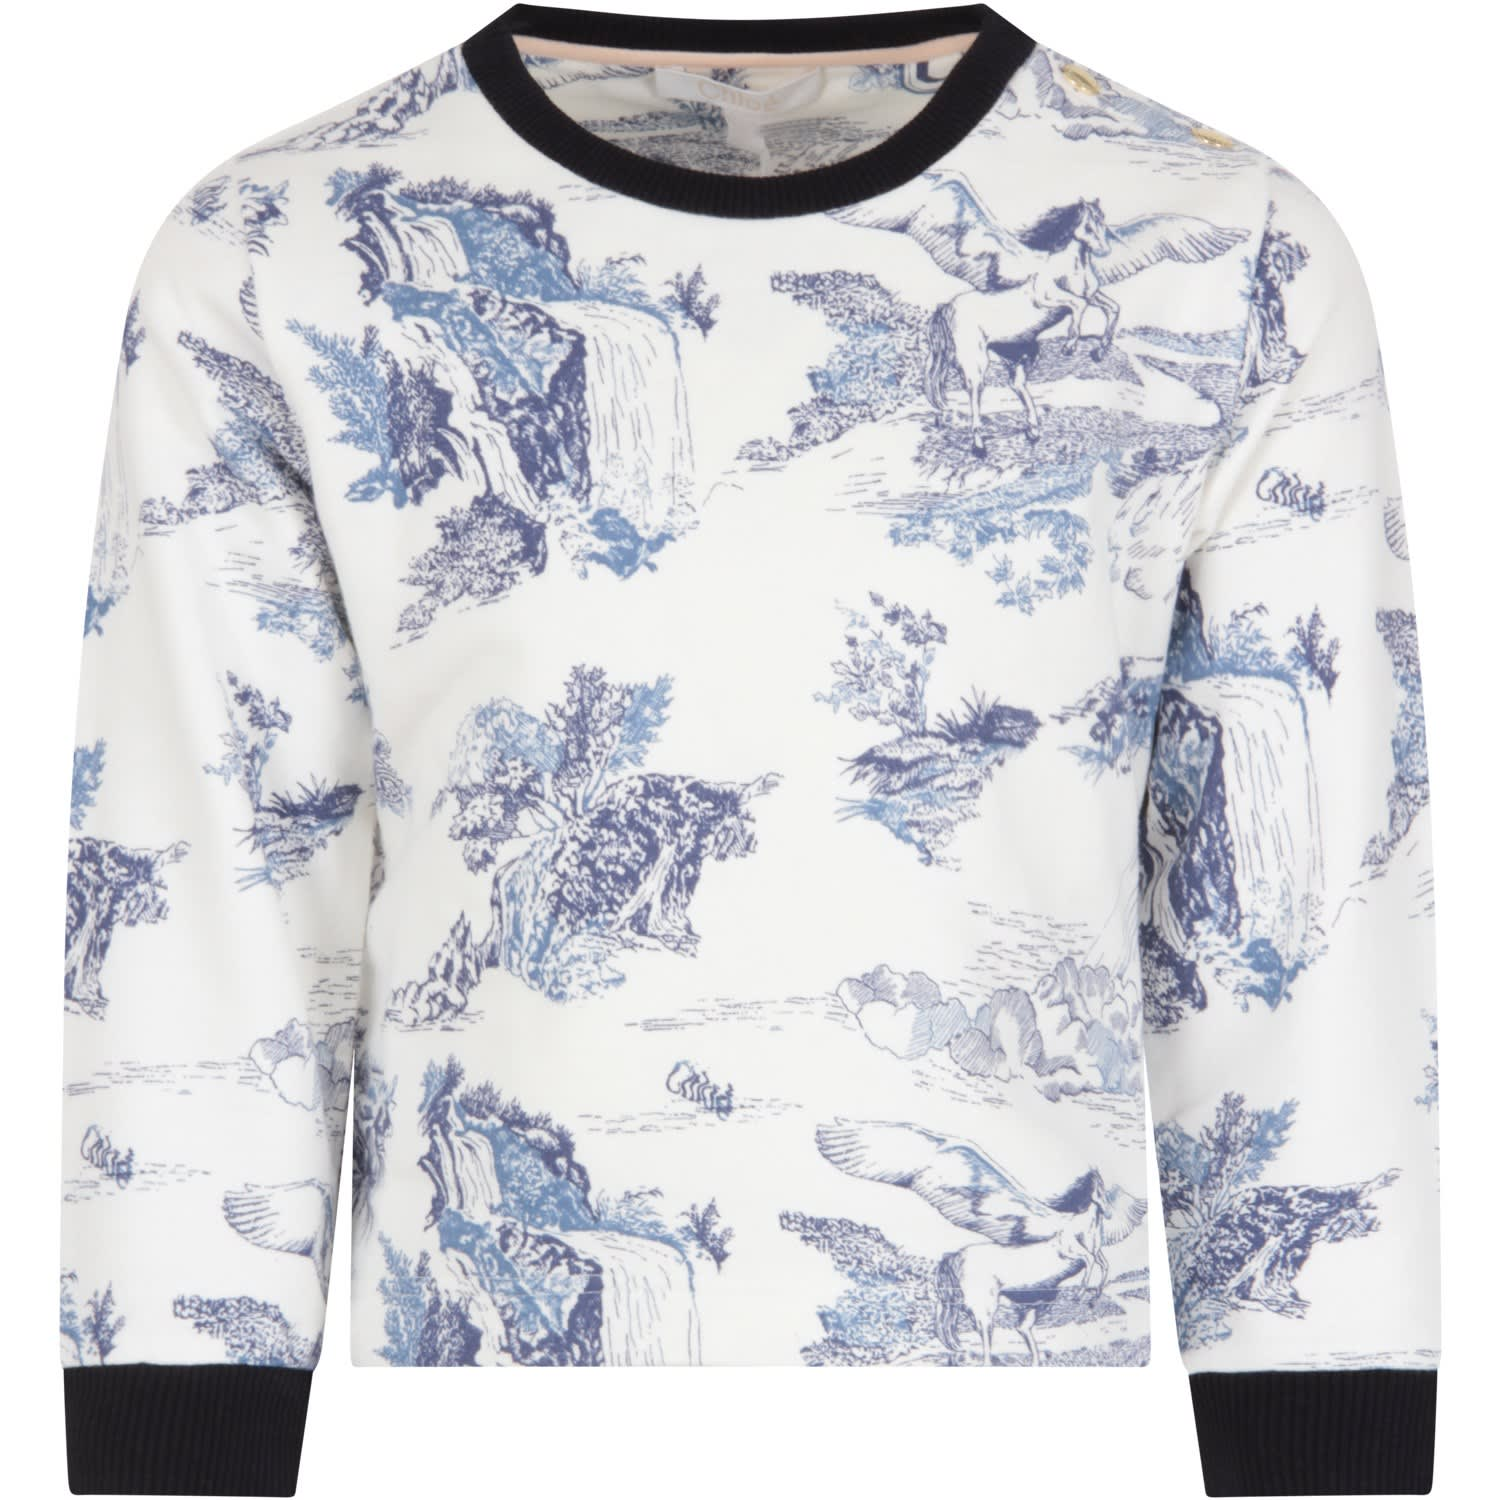 Color: White White sweatshirt, with long sleeveles, ribbed crew-neck and cuffs and side rips. It is embellished with blue all-over prints. 100% Cotton. Machine wash at 30°C.